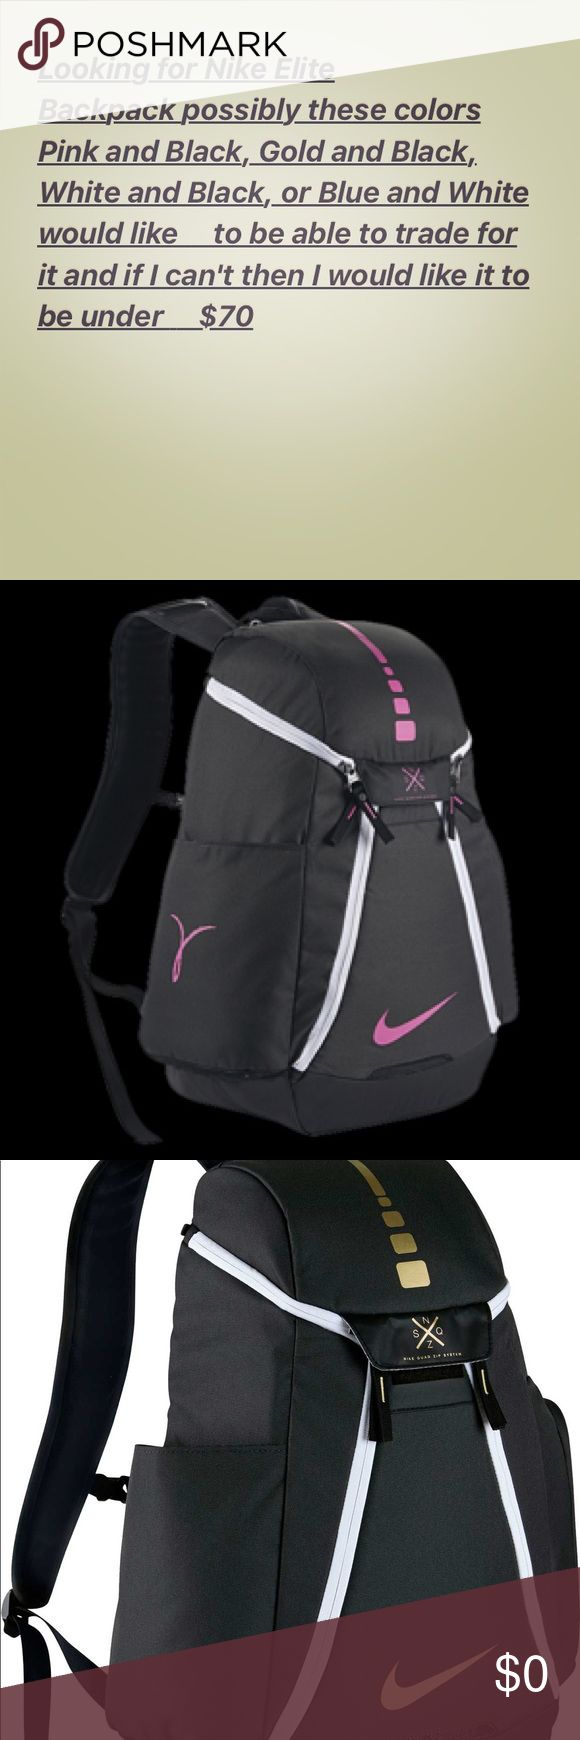 Nike Elite Backpack Want one by September 2017 or 2018 one of those colors but not a grey and white one I liked that color but almost everyone in my grade has a grey Nike Elite Backpack Nike Bags Backpacks